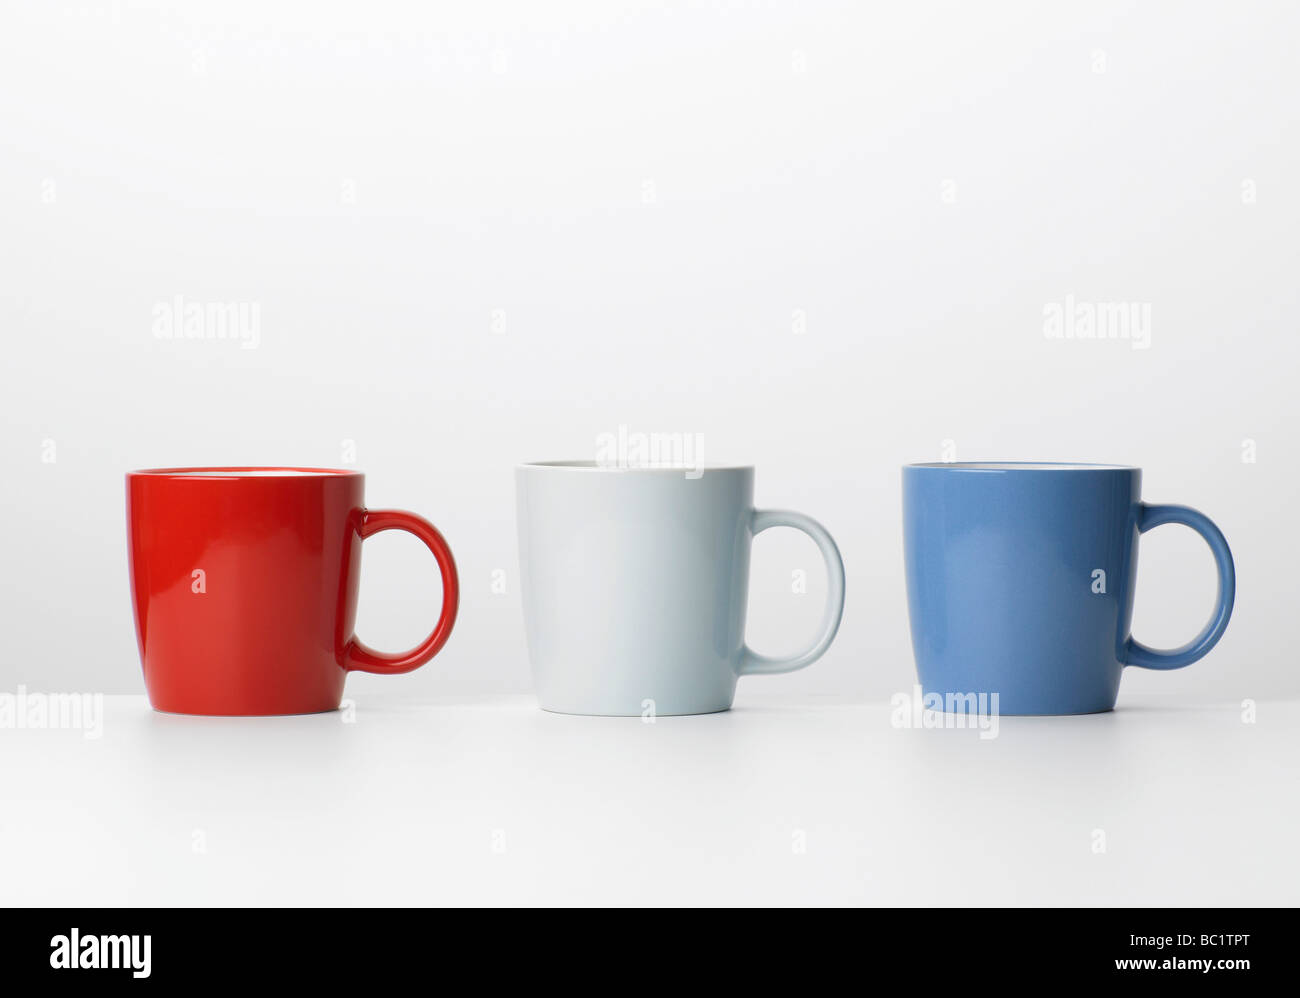 colored mugs red white and blue - Stock Image